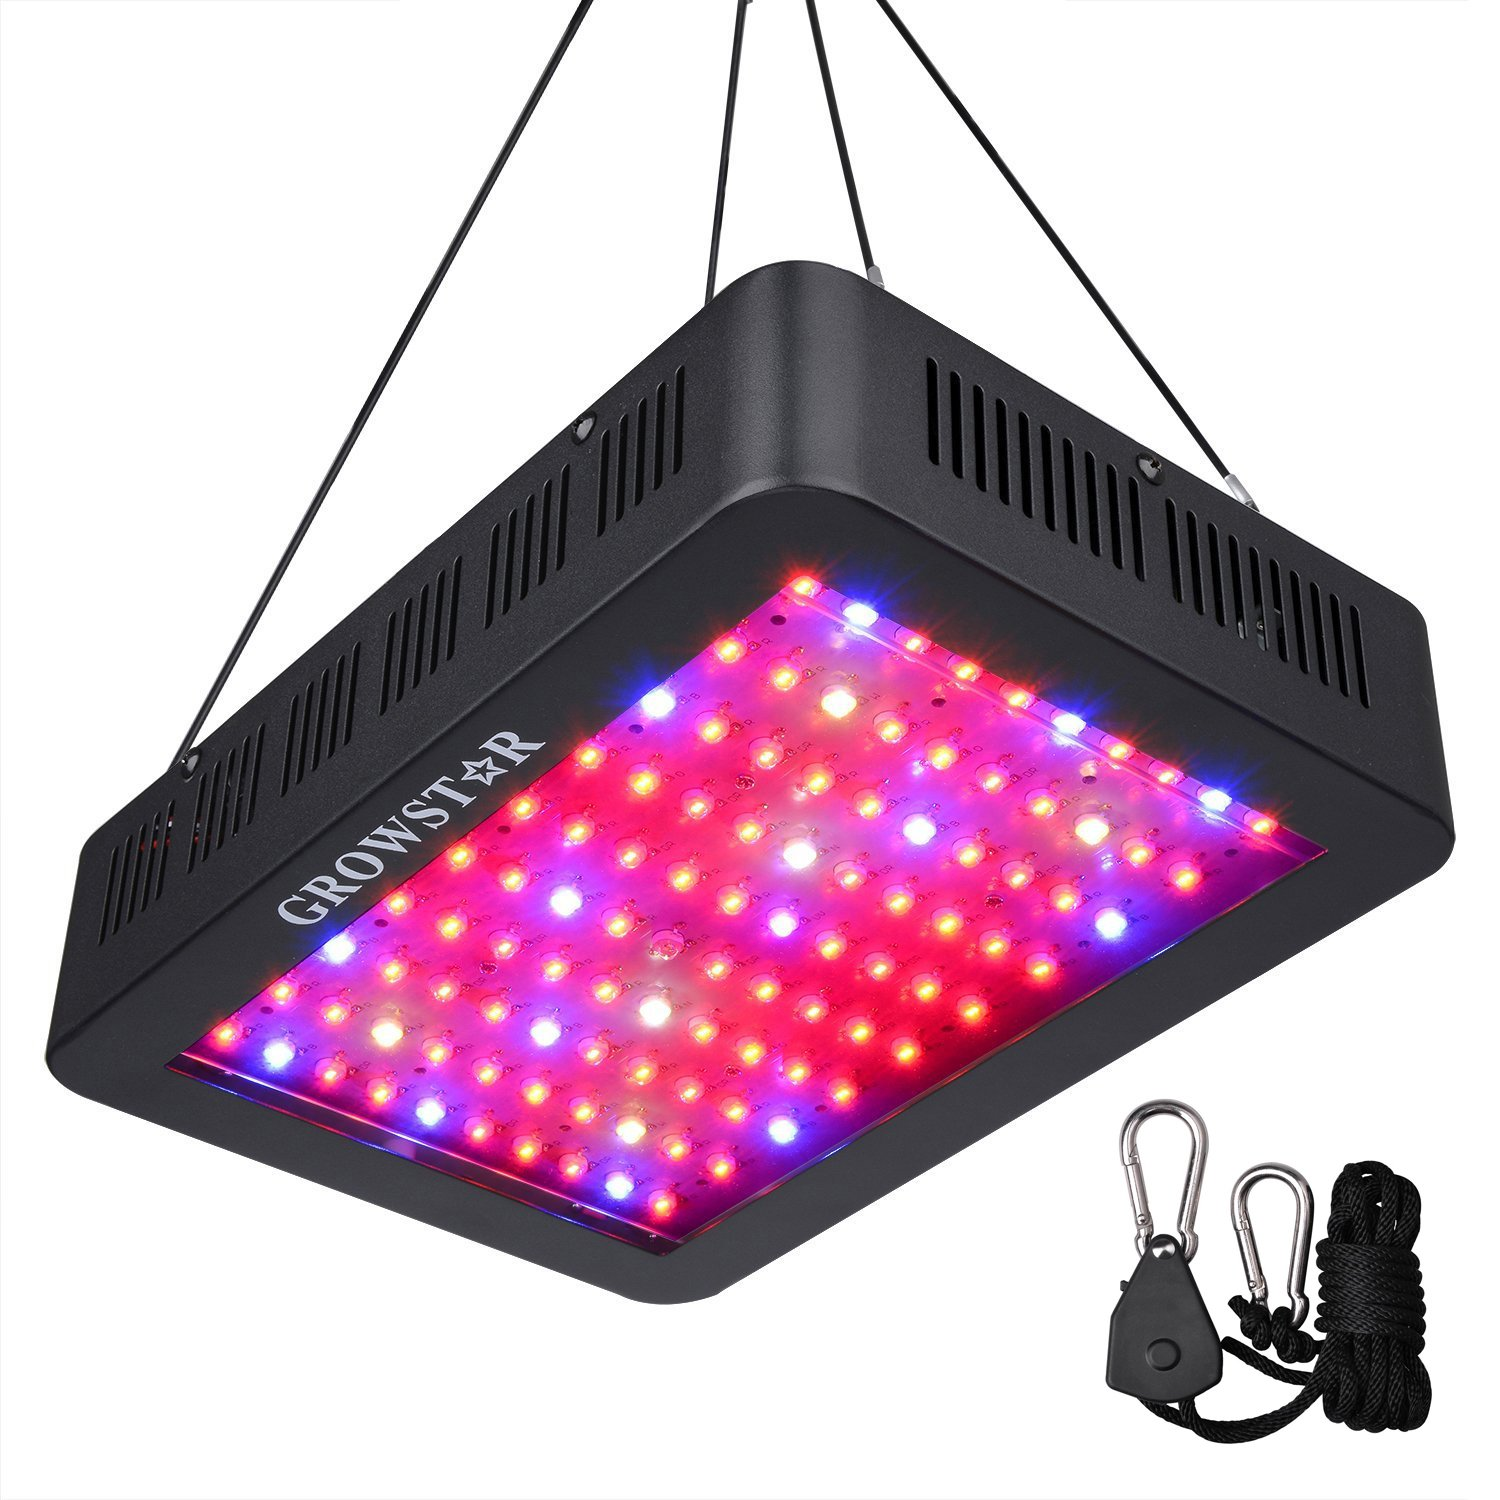 1000W LED Grow Light, Growstar Double Chips LED Grow Lamp Full Spectrum for Hydroponic Indoor Plants Flower and Veg with UV IR Daisy Chain (12-Band)